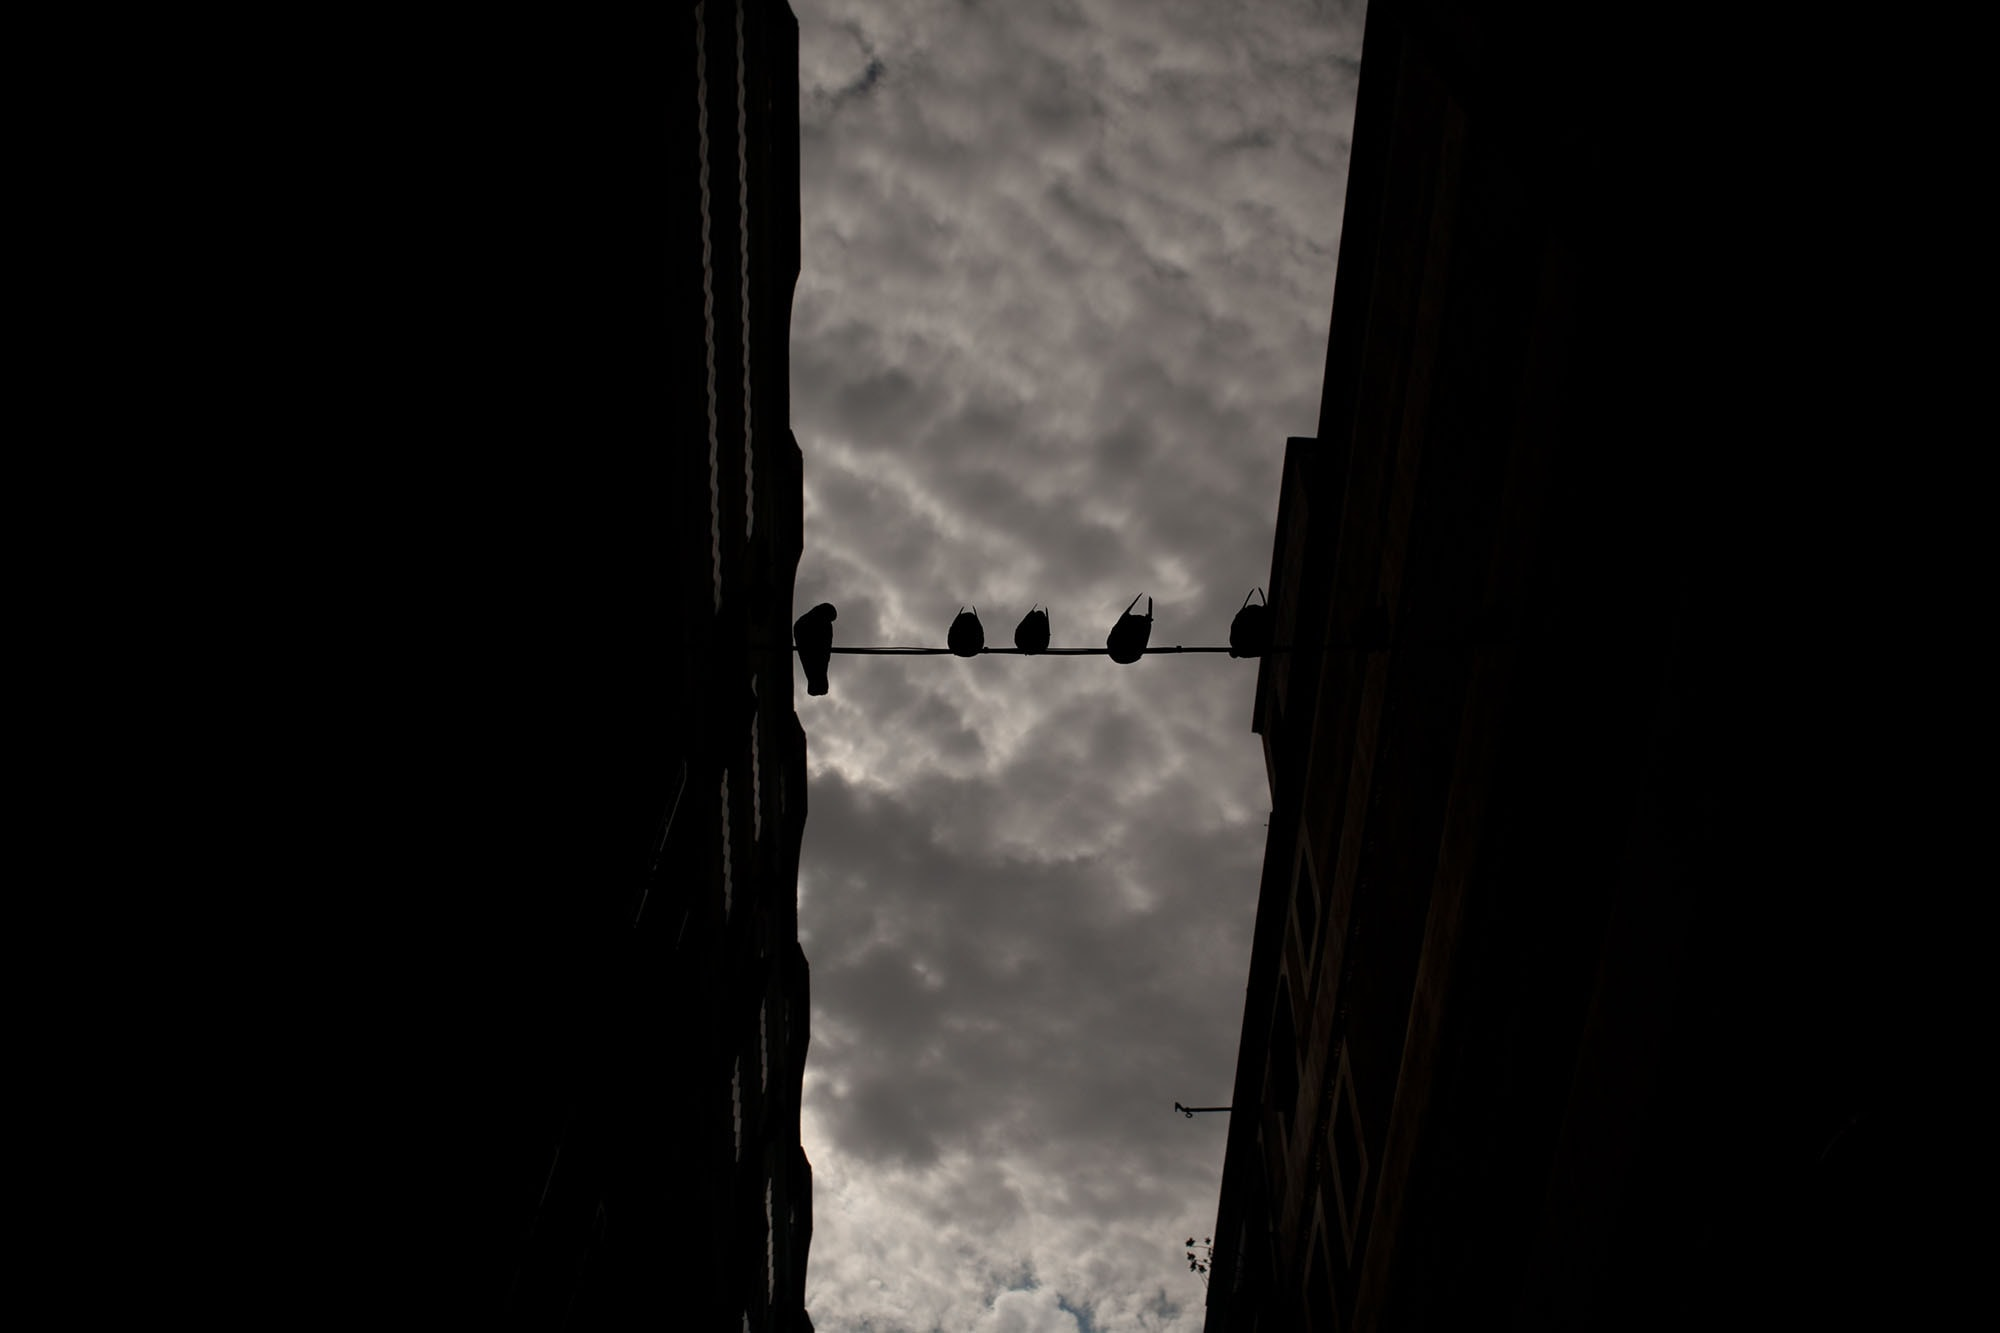 Birds on a wire in Barcelona, Spain